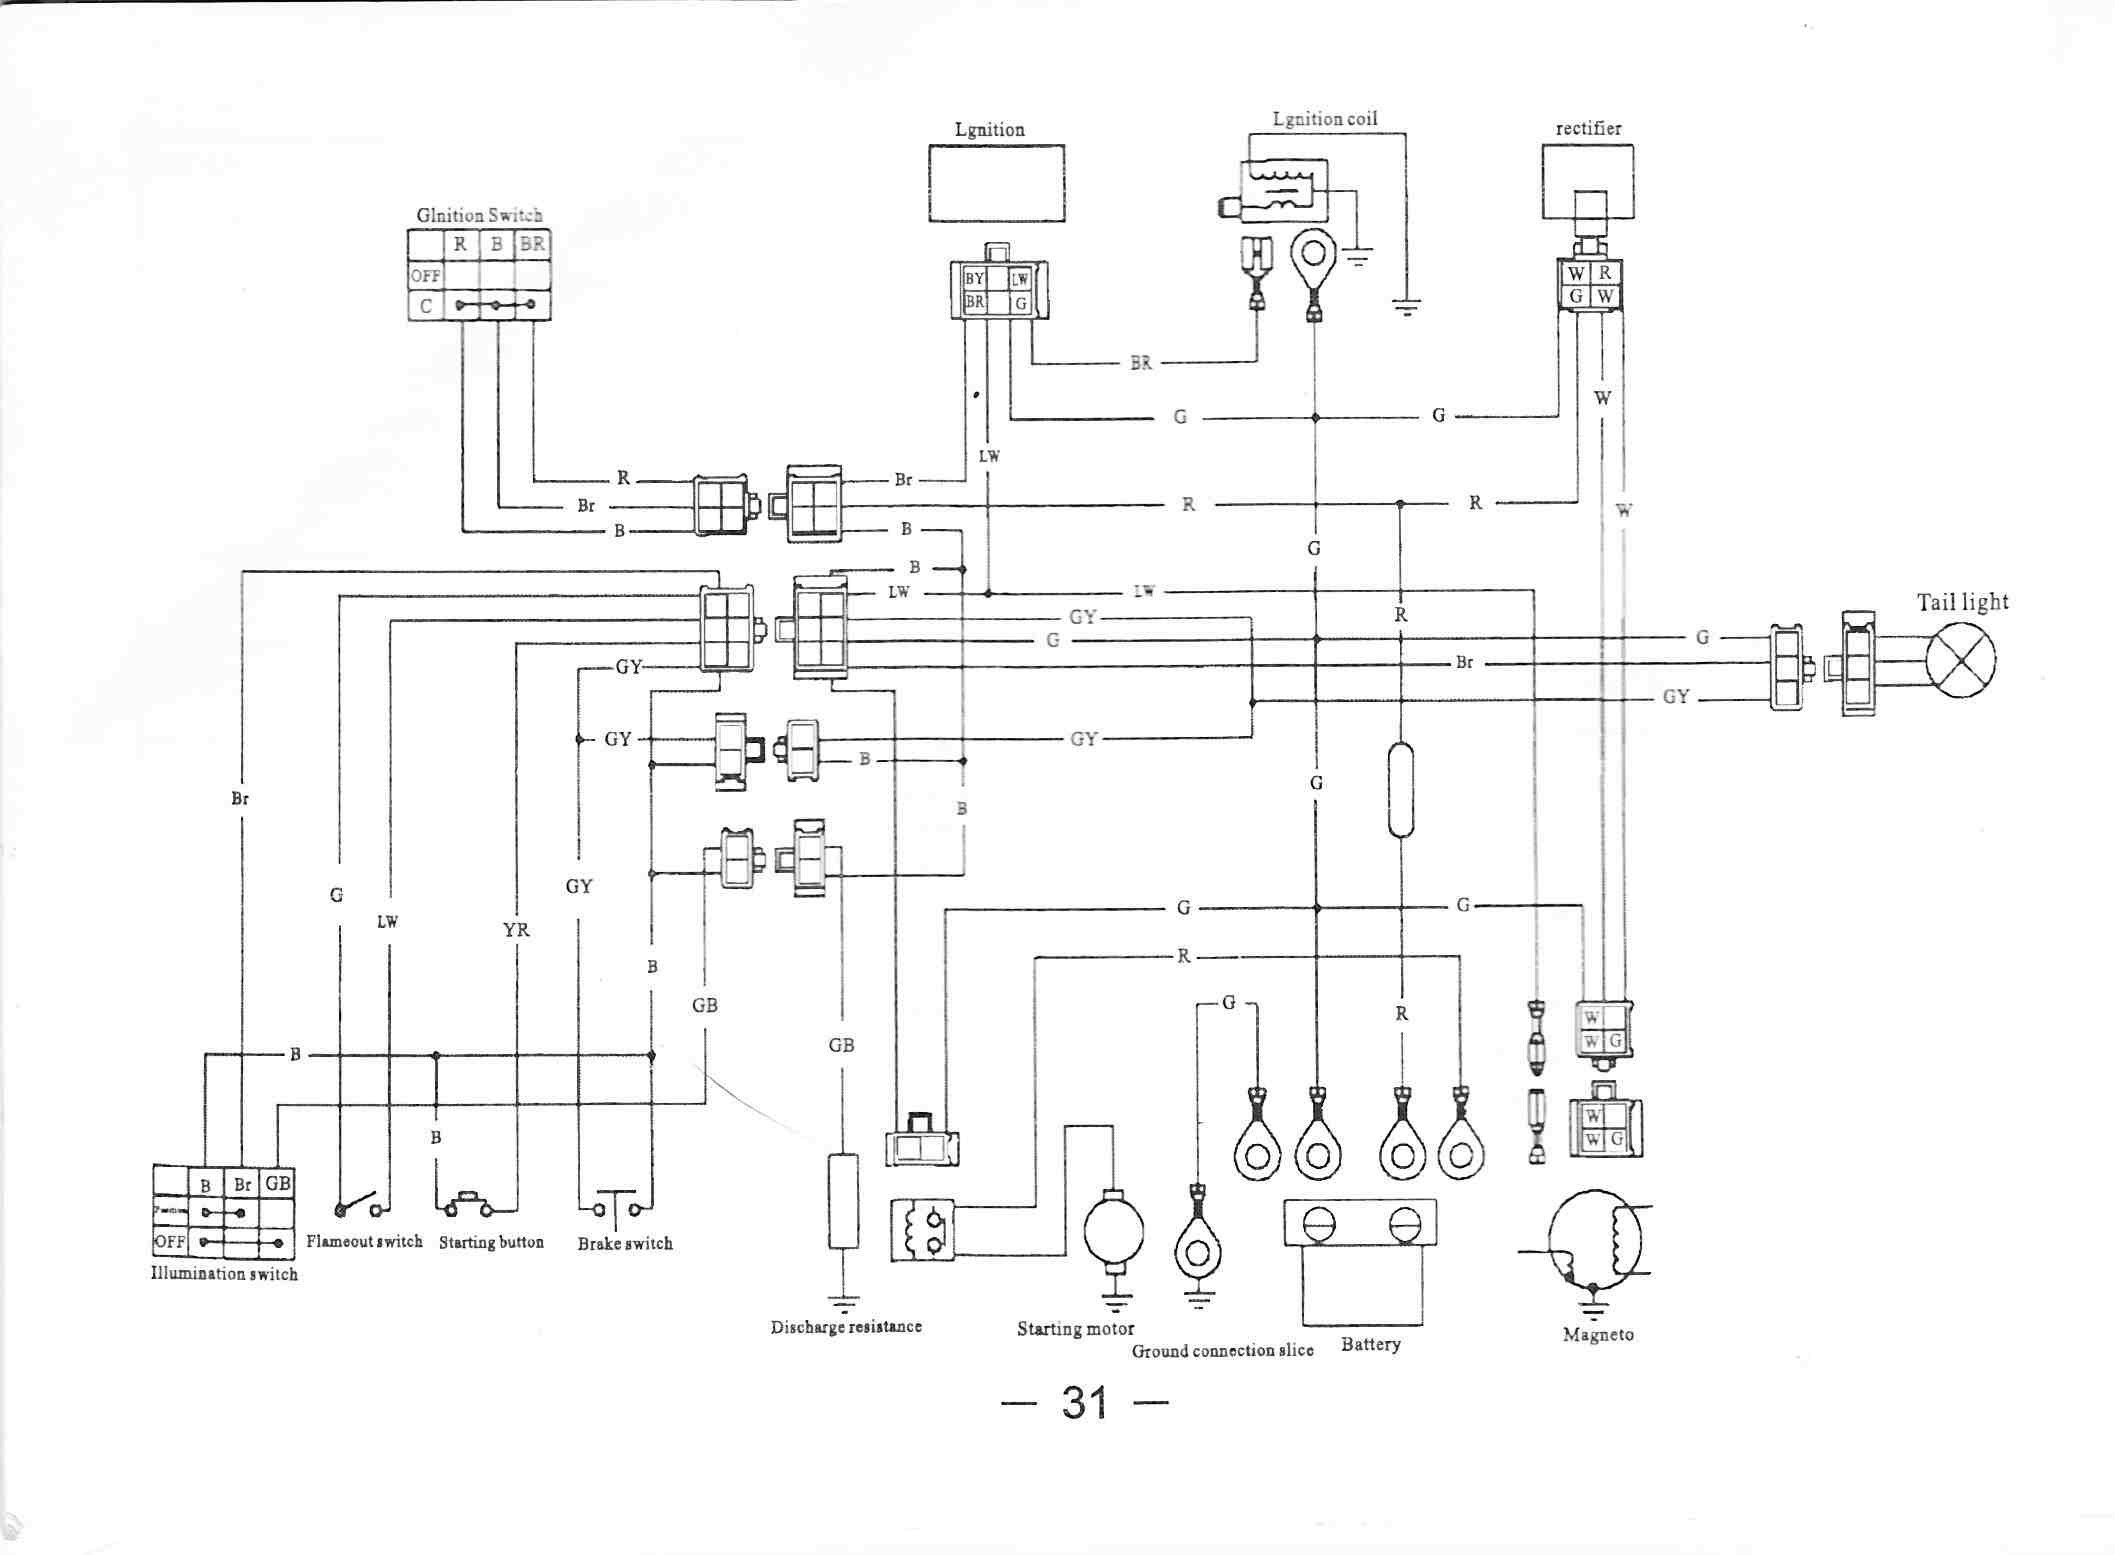 Wiring Diagram For Yamaha Dirt Bike Library. Atv Turn Signal Wiring Diagram 50cc Dirt Bike Circuit Diagrams Info. KTM. KTM 50 Dirt Bike Diagram At Scoala.co